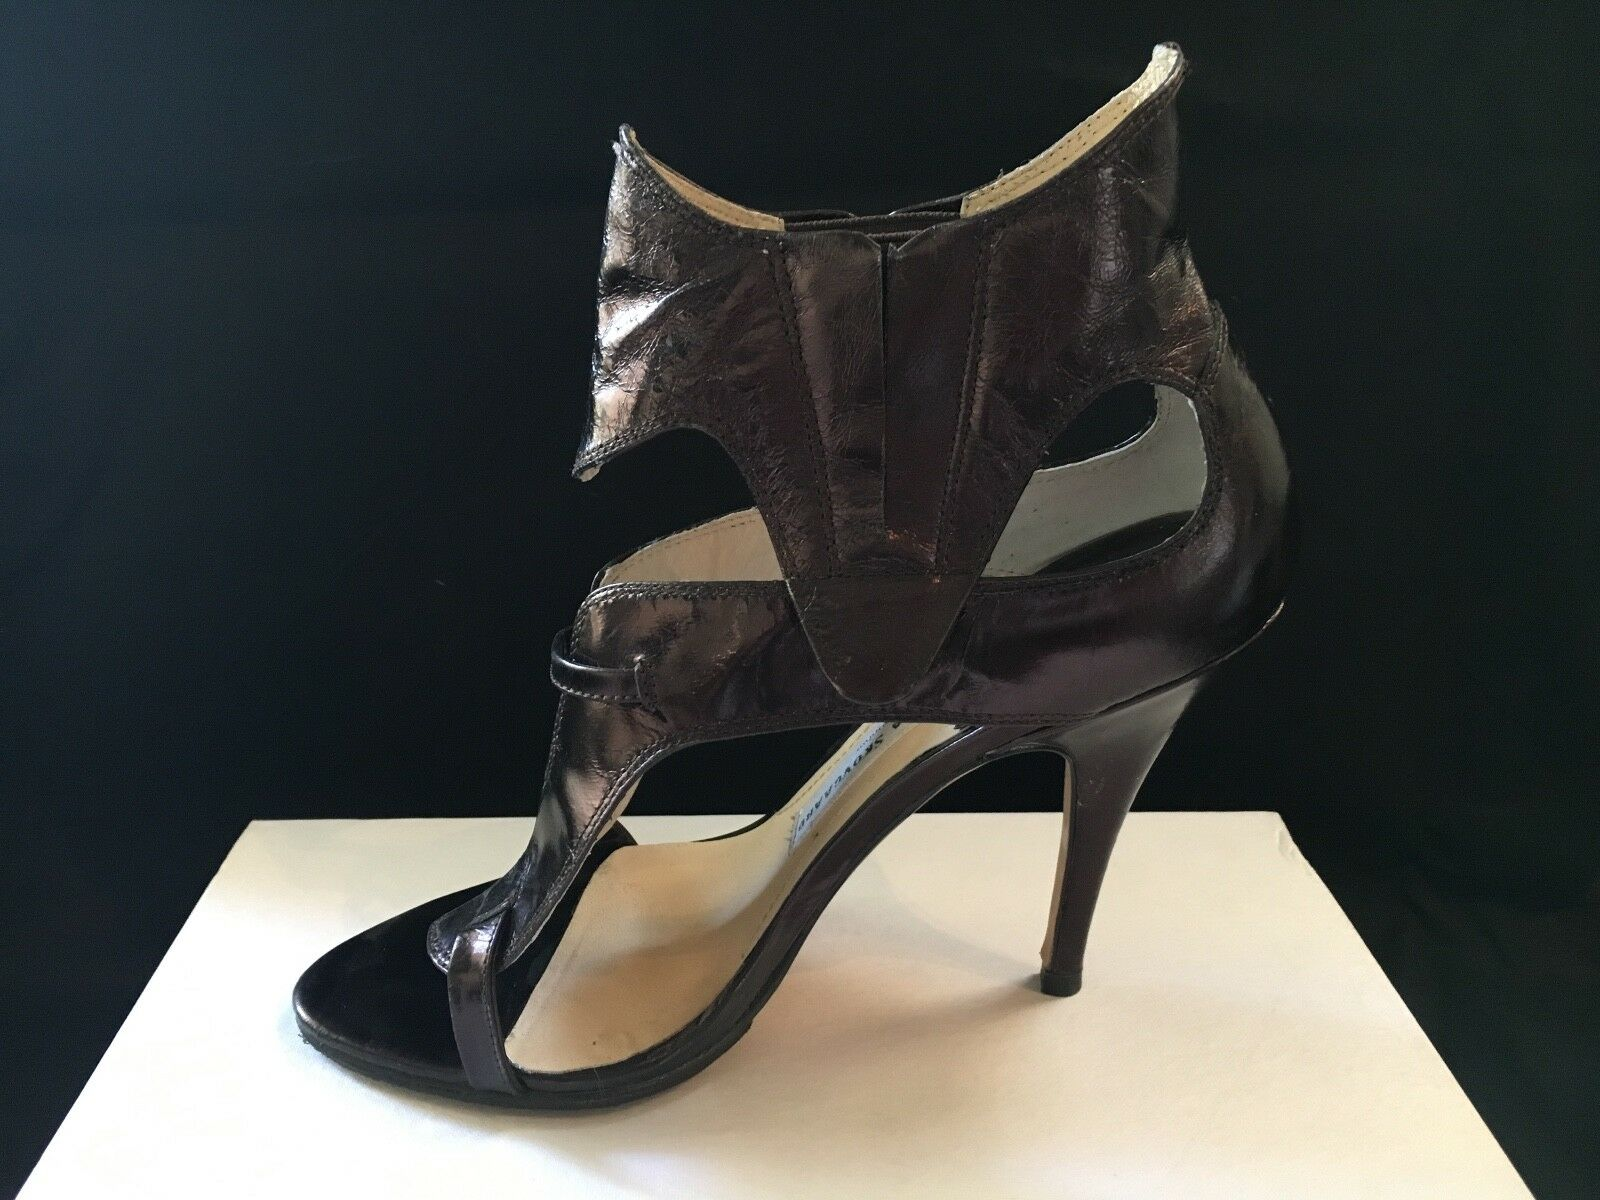 Sexy Camilla Skovgaard Brown Metallic Buckle Cut-out Sandals 39 9 box & dust bag